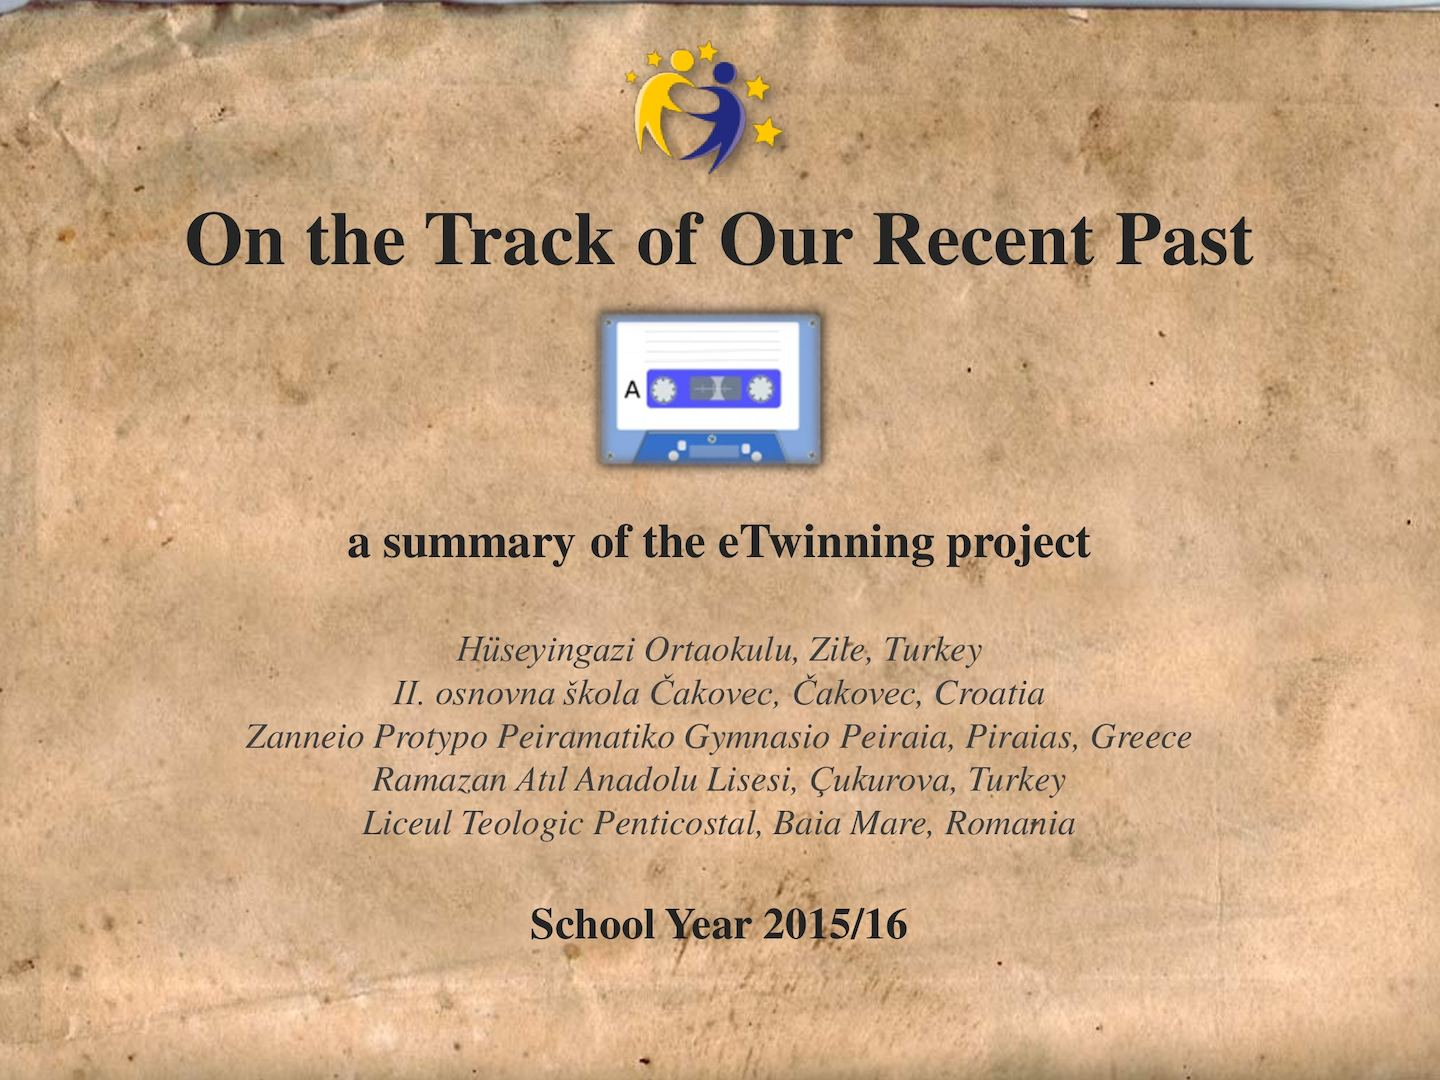 On The Track of Our Recent Past Project Brochure